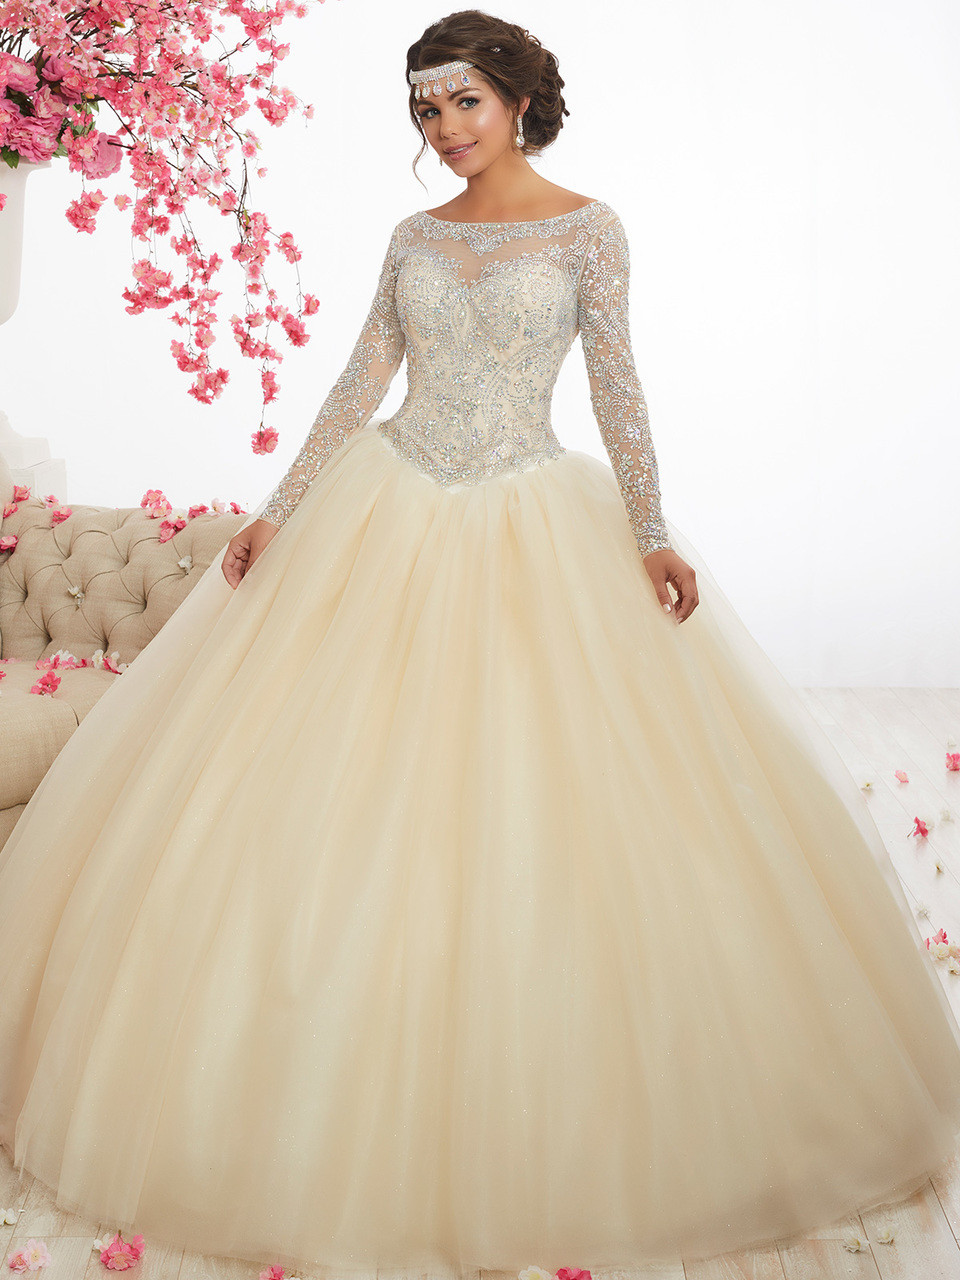 1e88806554a champagne sheer long sleeves quinceanera dress bateau neckline beaded  bodice and plain skirt by fiesta 56347